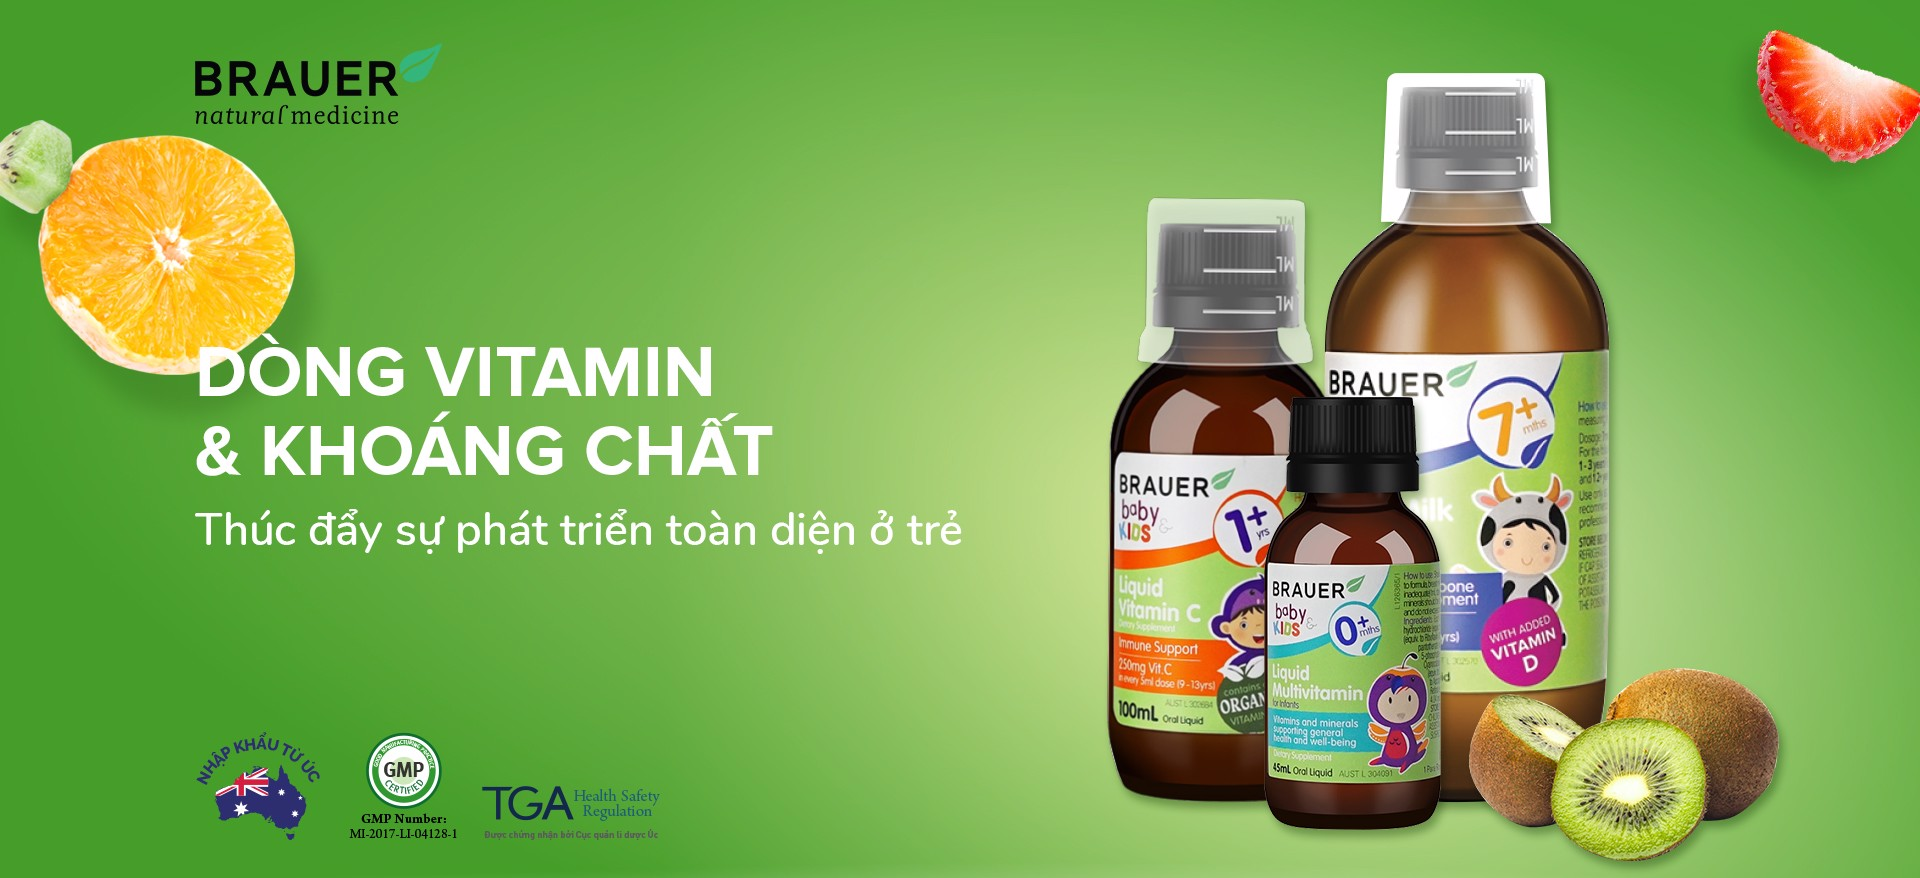 https://file.hstatic.net/1000380975/collection/banner_chinh_vitamin_1a82e8ddec3d4240bef21e252adf71dc.jpg